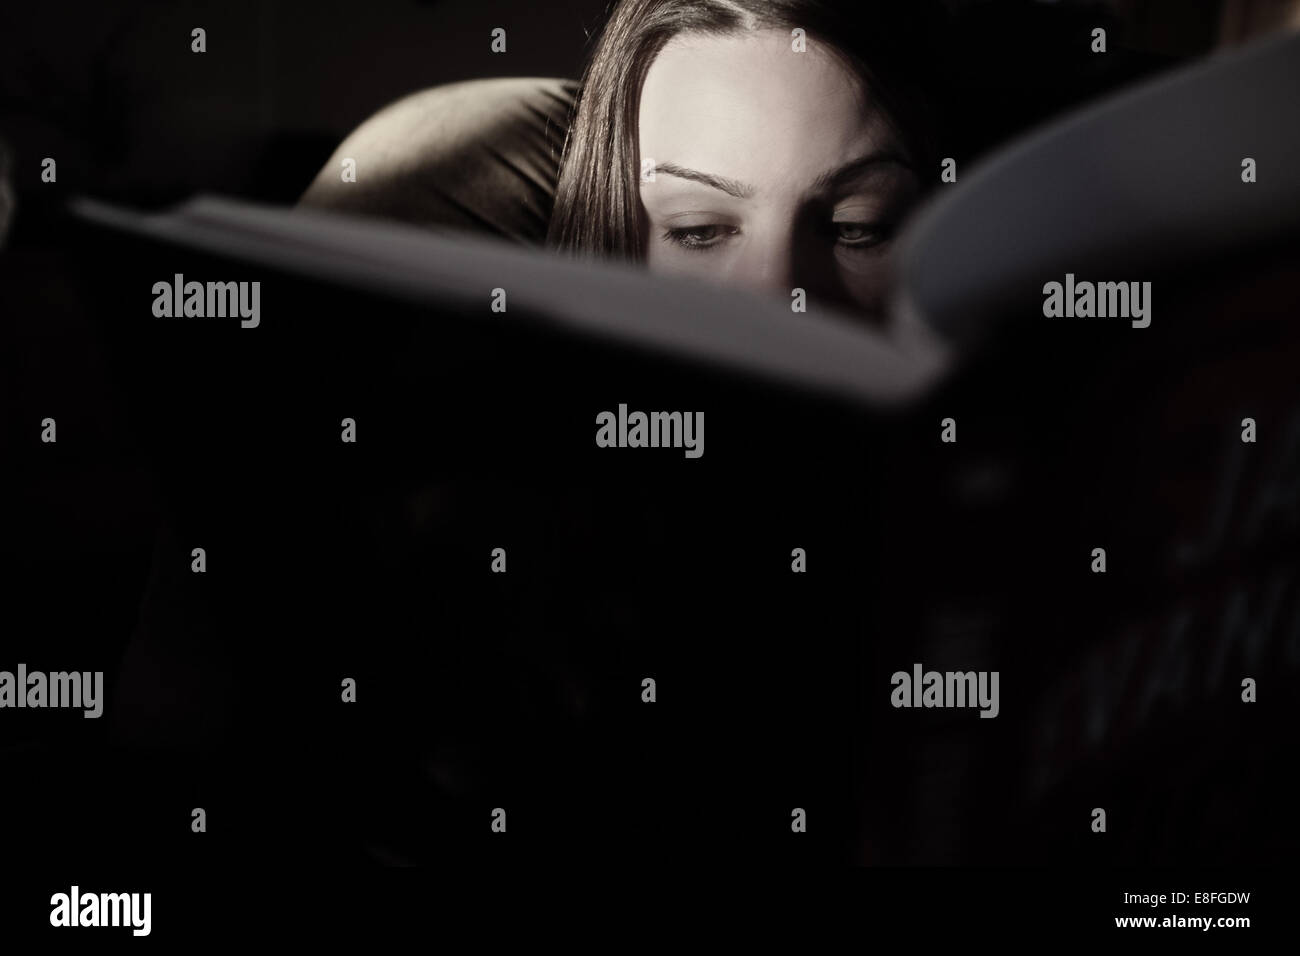 Close-up of woman reading a book - Stock Image